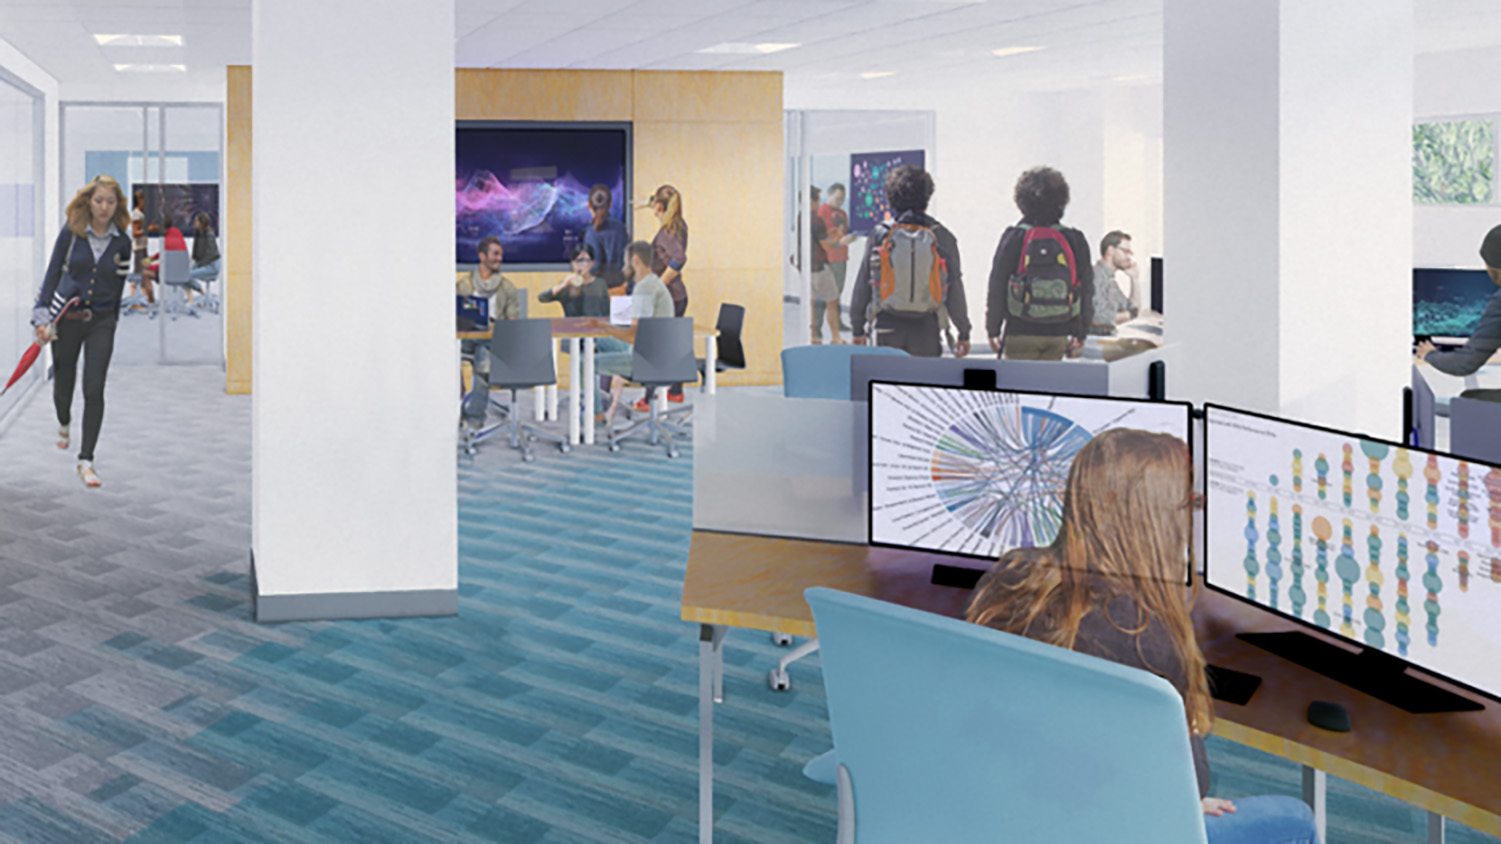 A rendering of the Data Experience Lab shows students collaborating at computers and tables